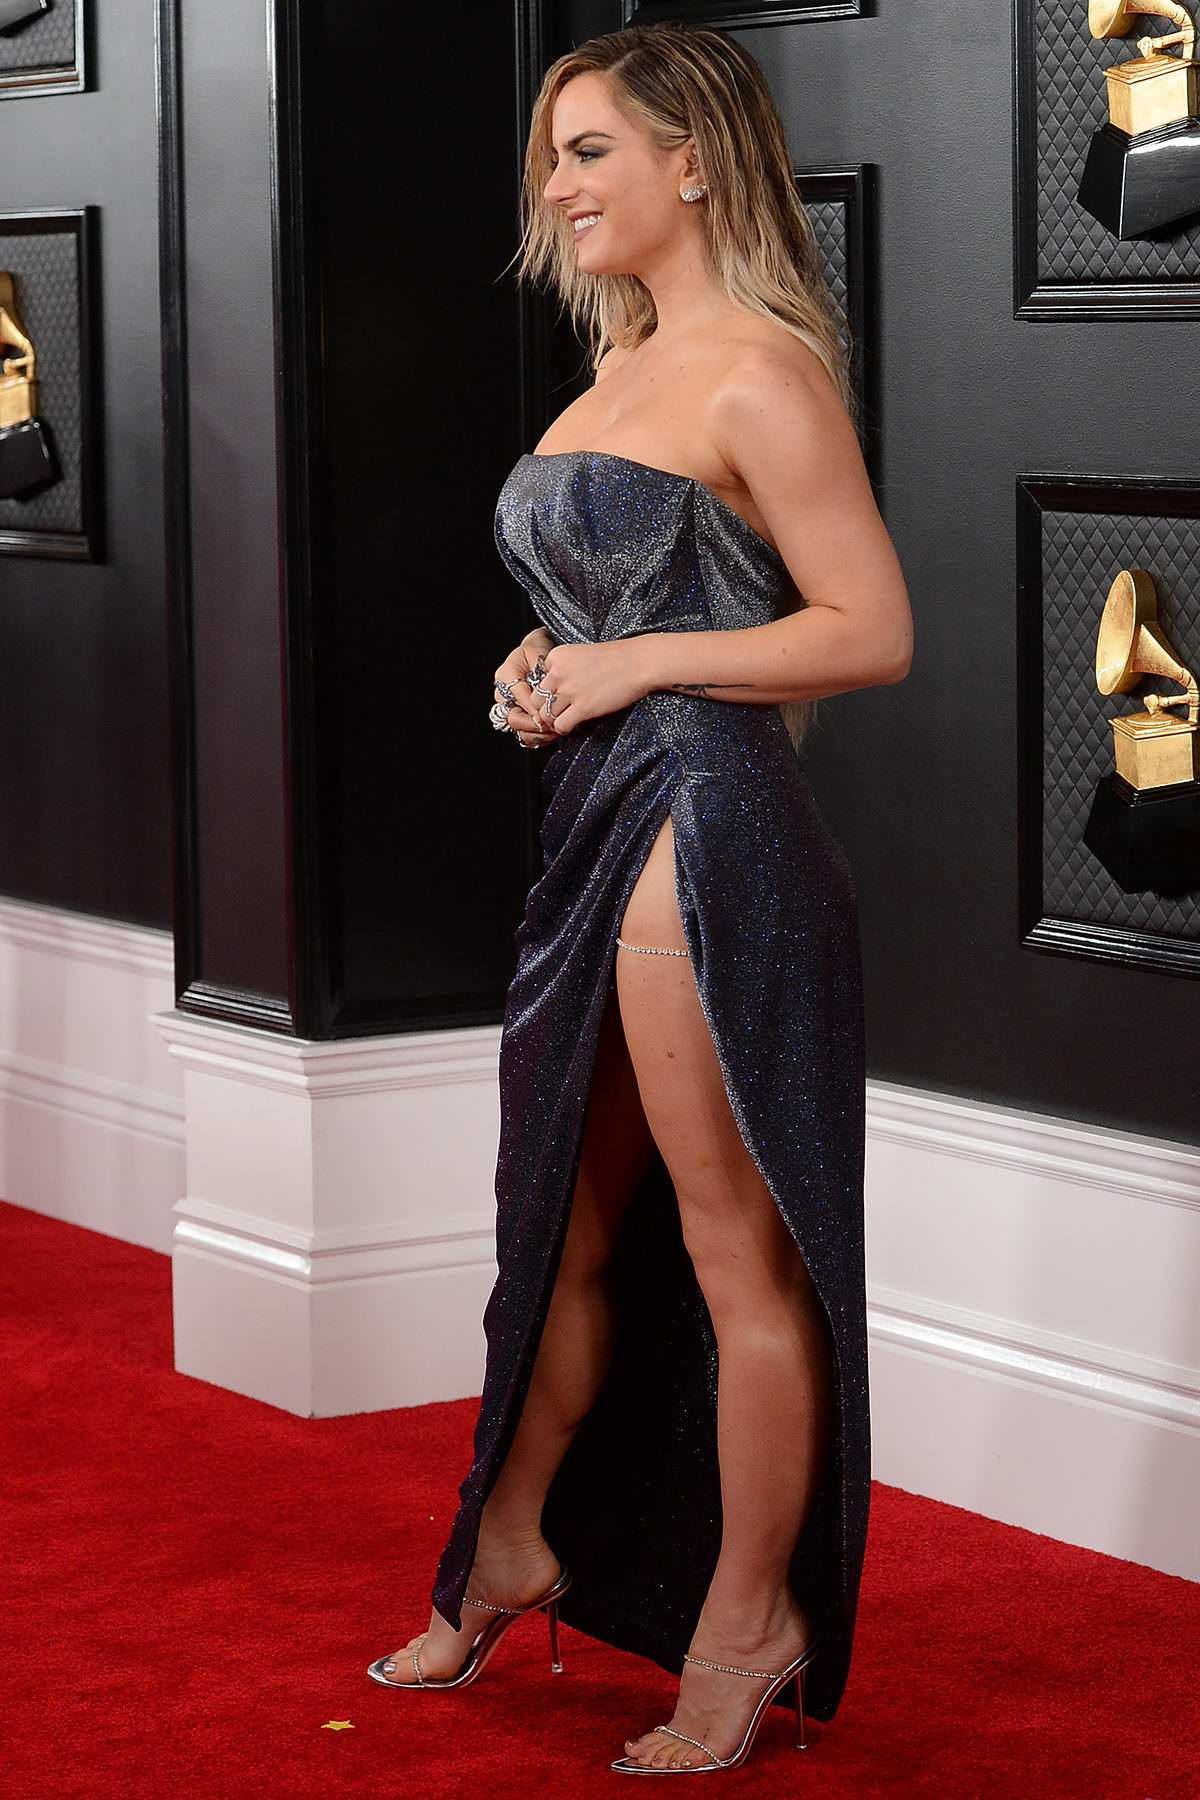 joanna jojo levesque attends the 62nd annual grammy